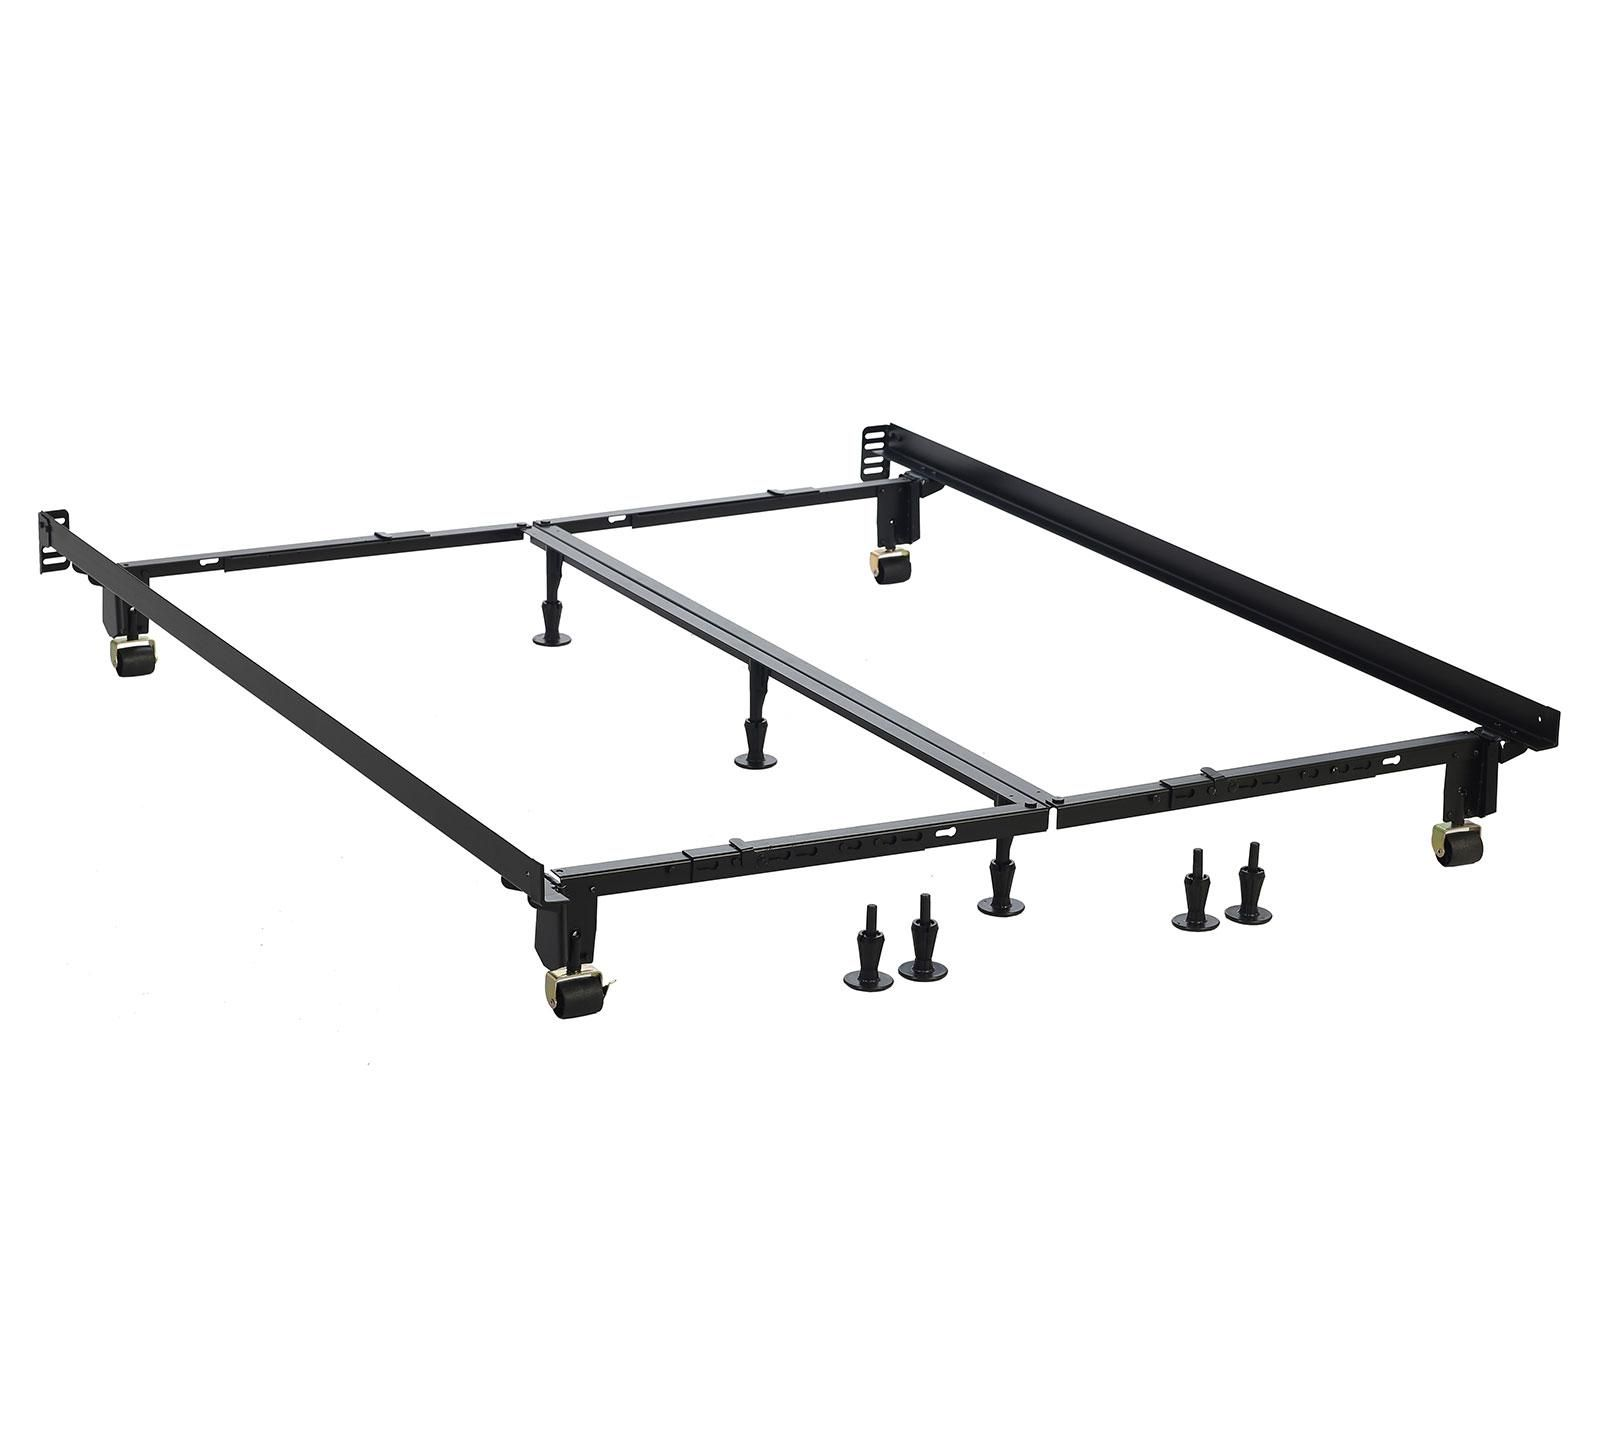 Hollywood Bed Frame World Class Bed Frame In 2020 Adjustable Bed